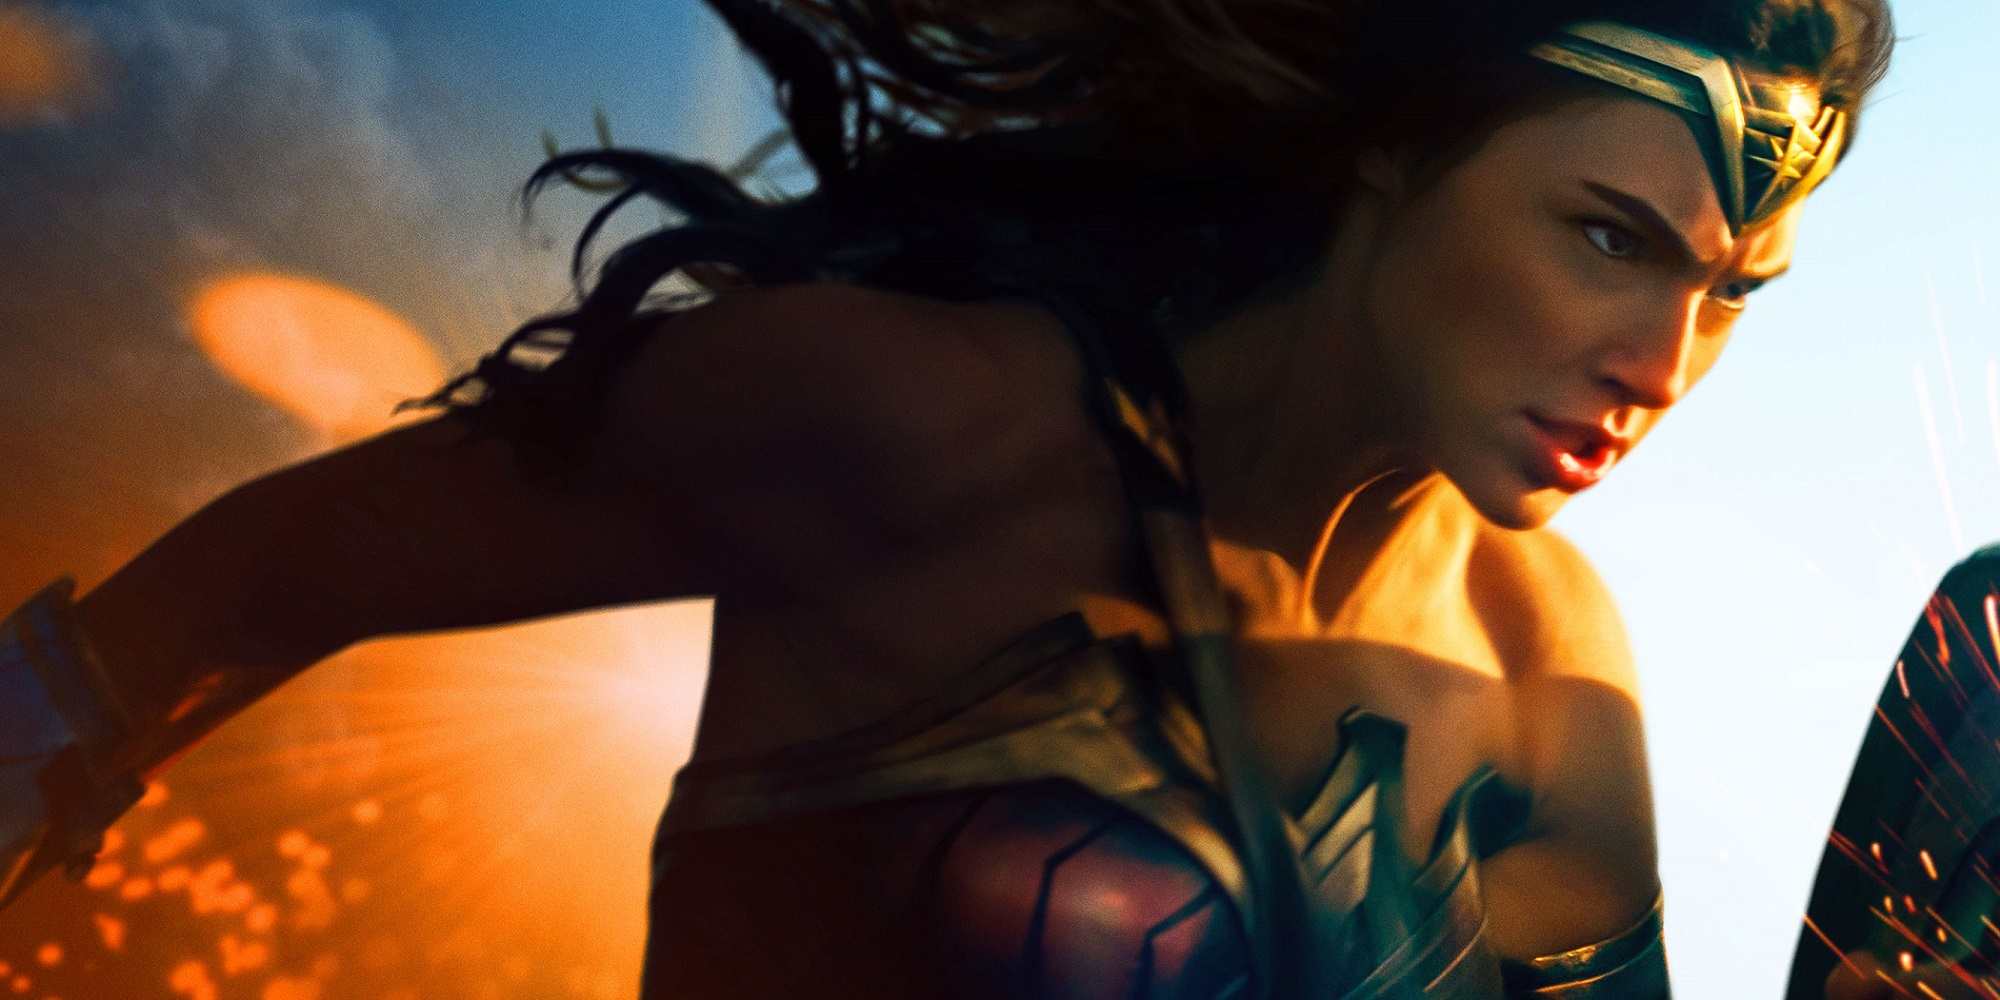 'Wonder Woman' cruises past 'The Mummy' at box office